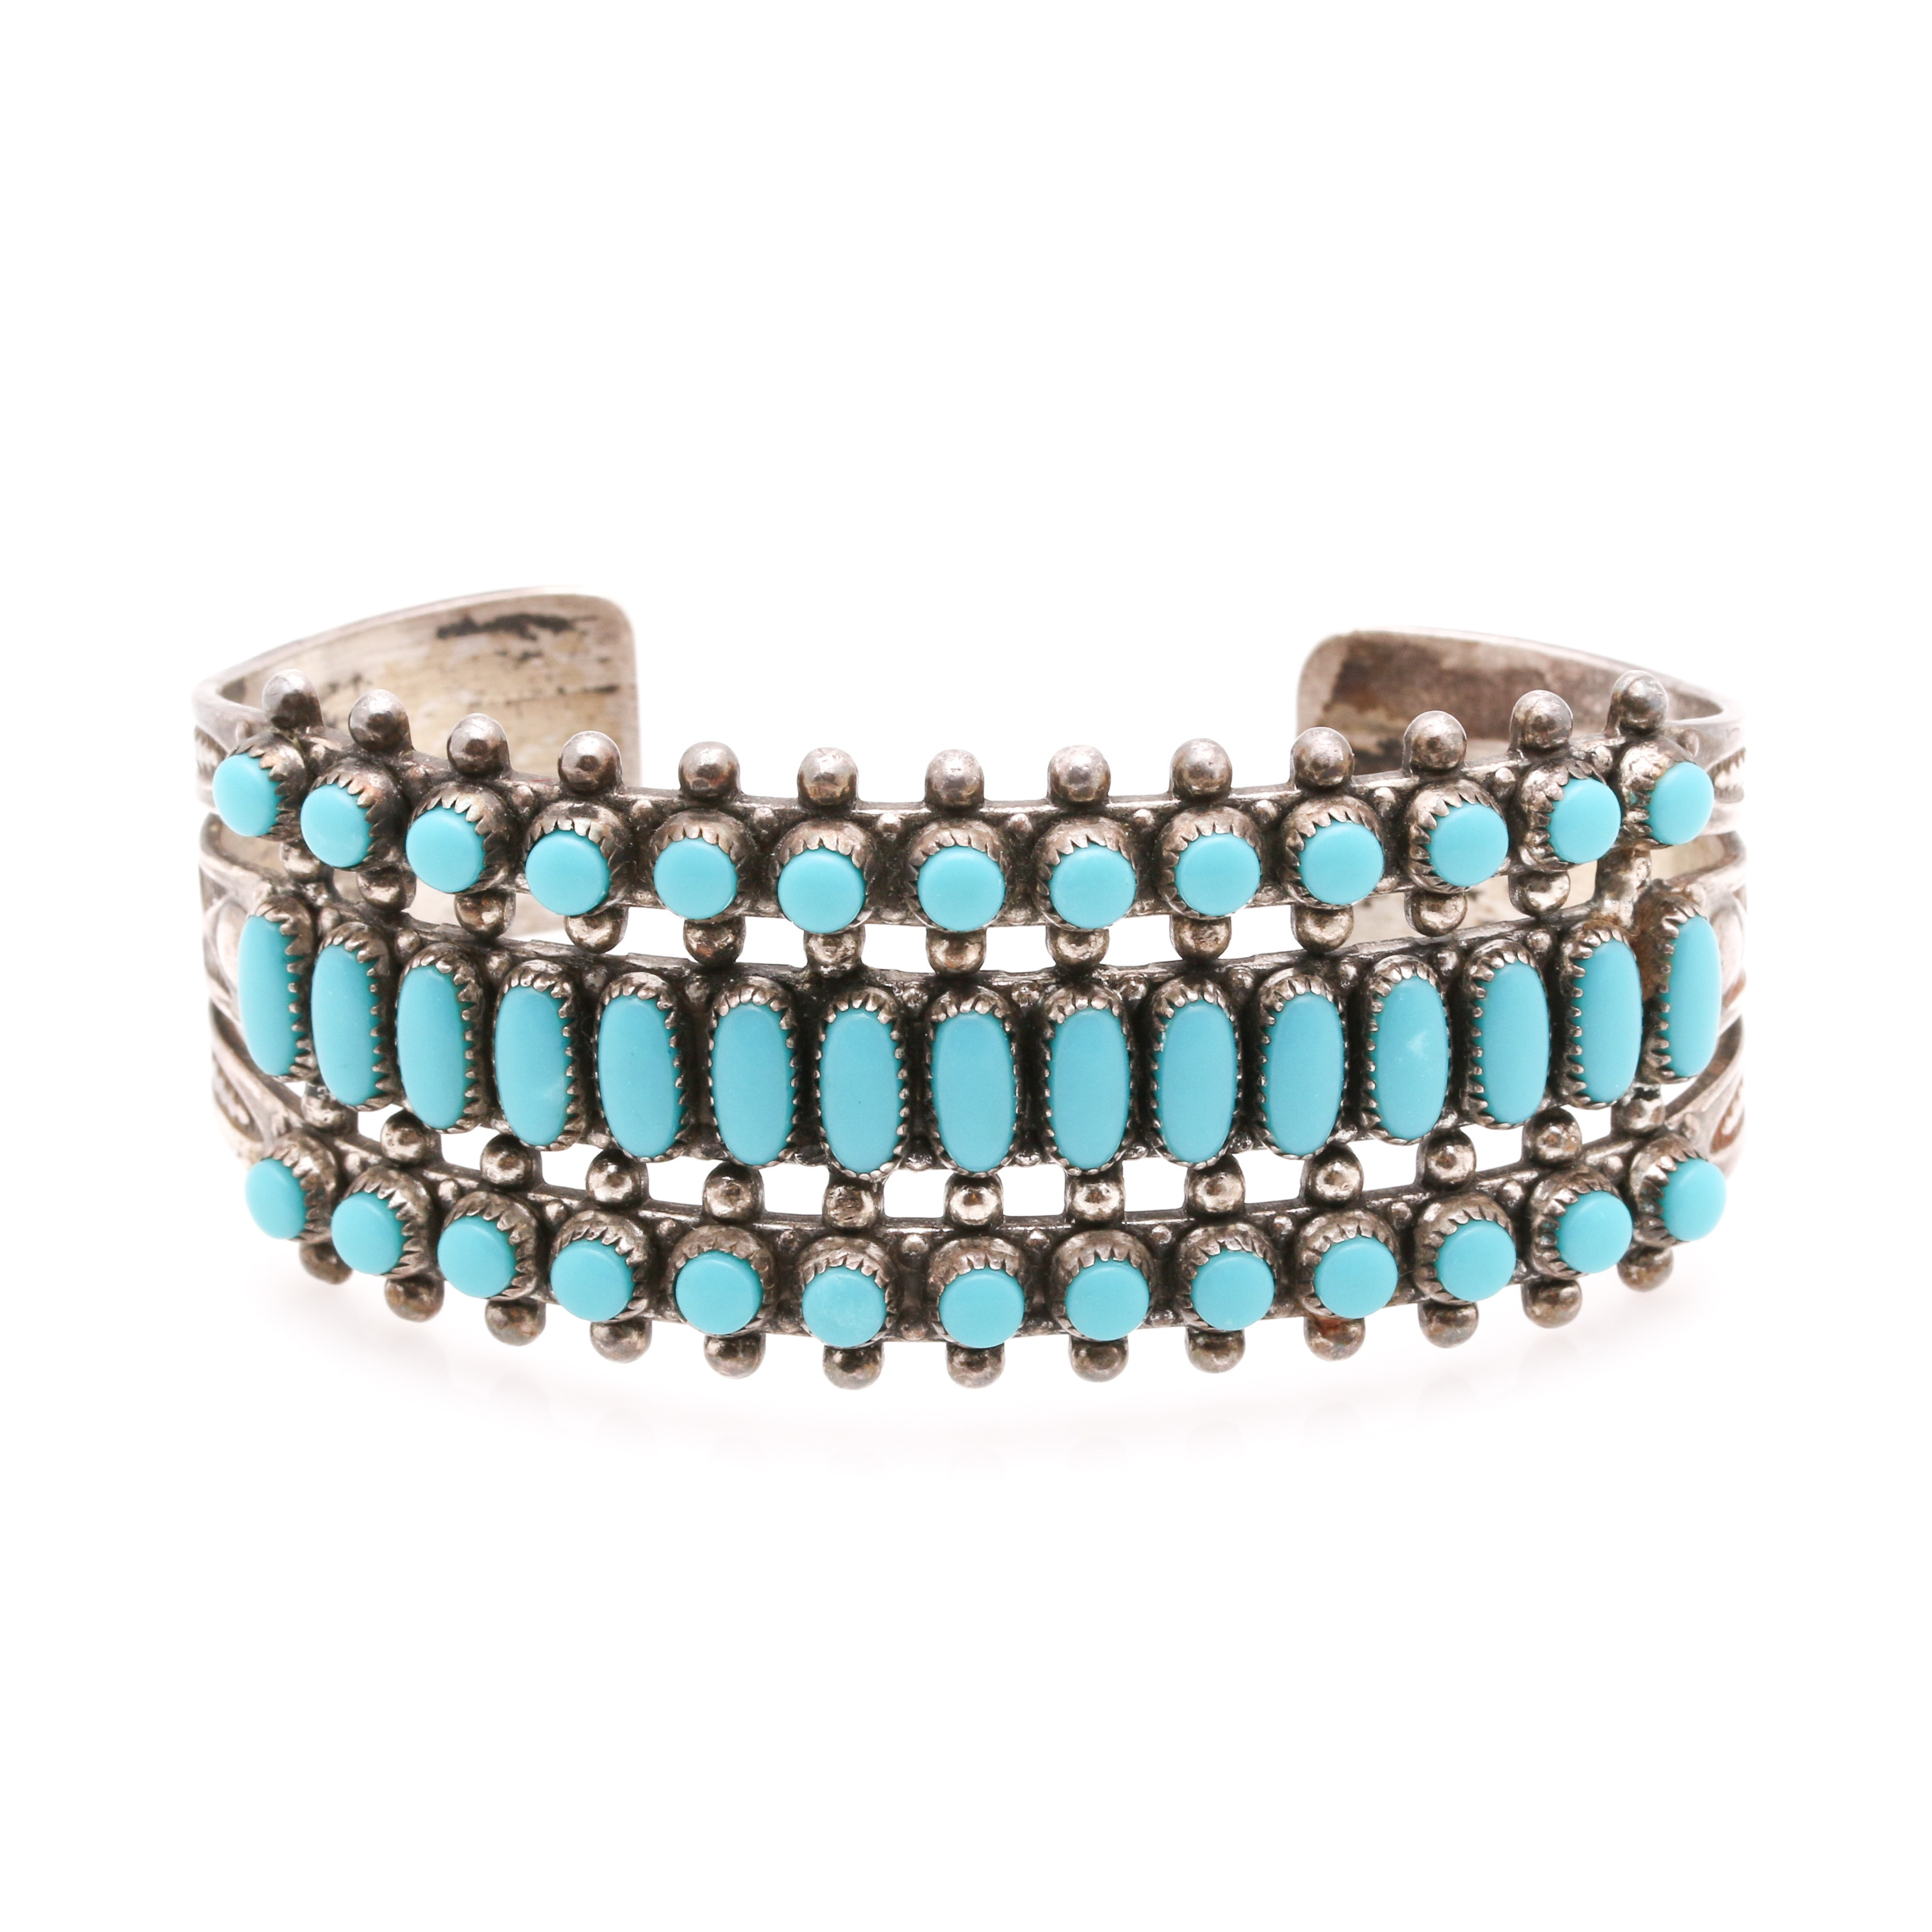 Jane Popovitch Navajo Sterling Silver and Reconstituted Turquoise Cuff Bracelet